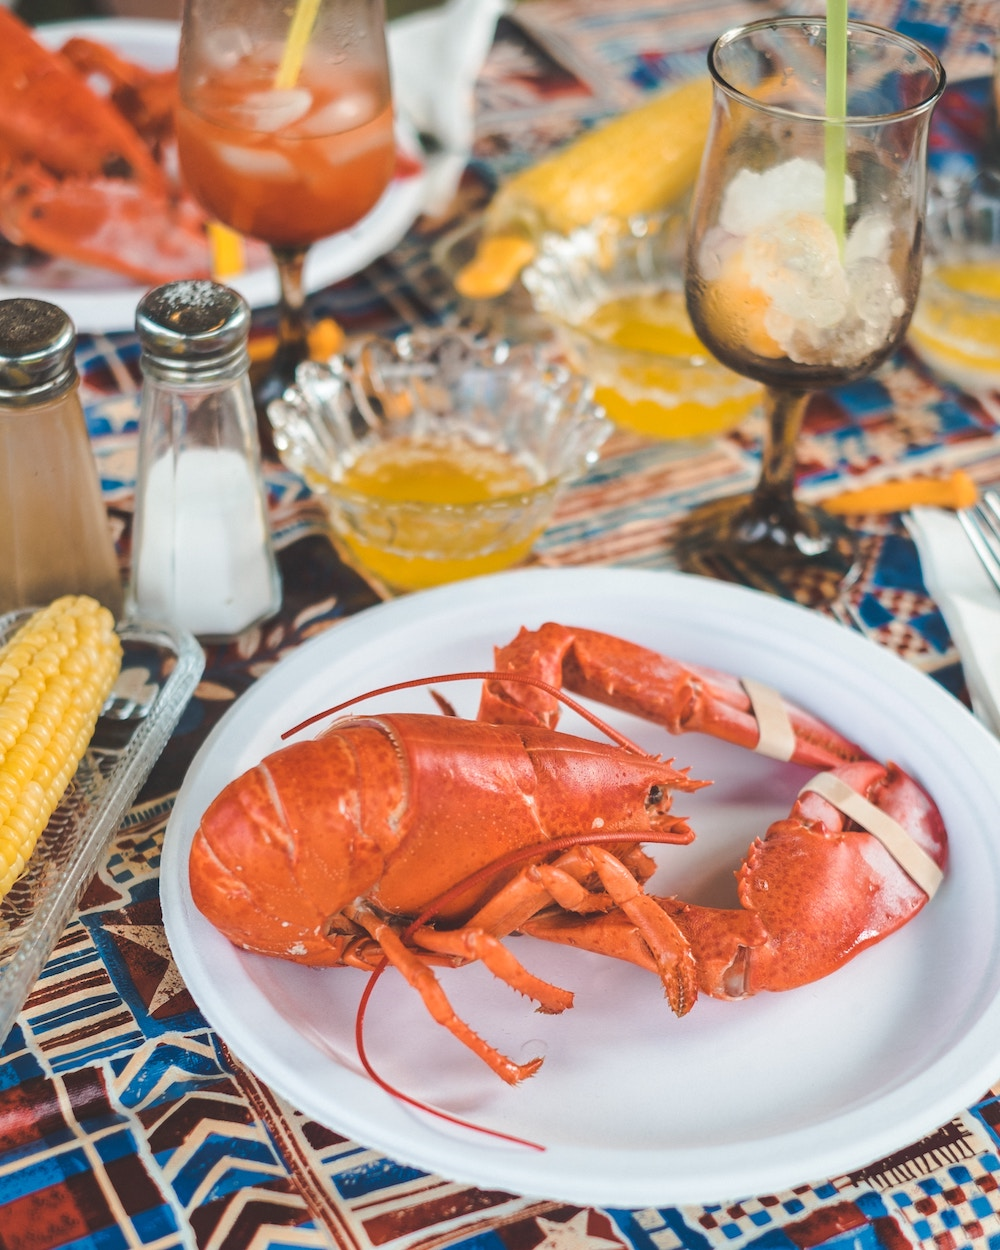 seafood dinner comes with a high cost of waste & environmental issues